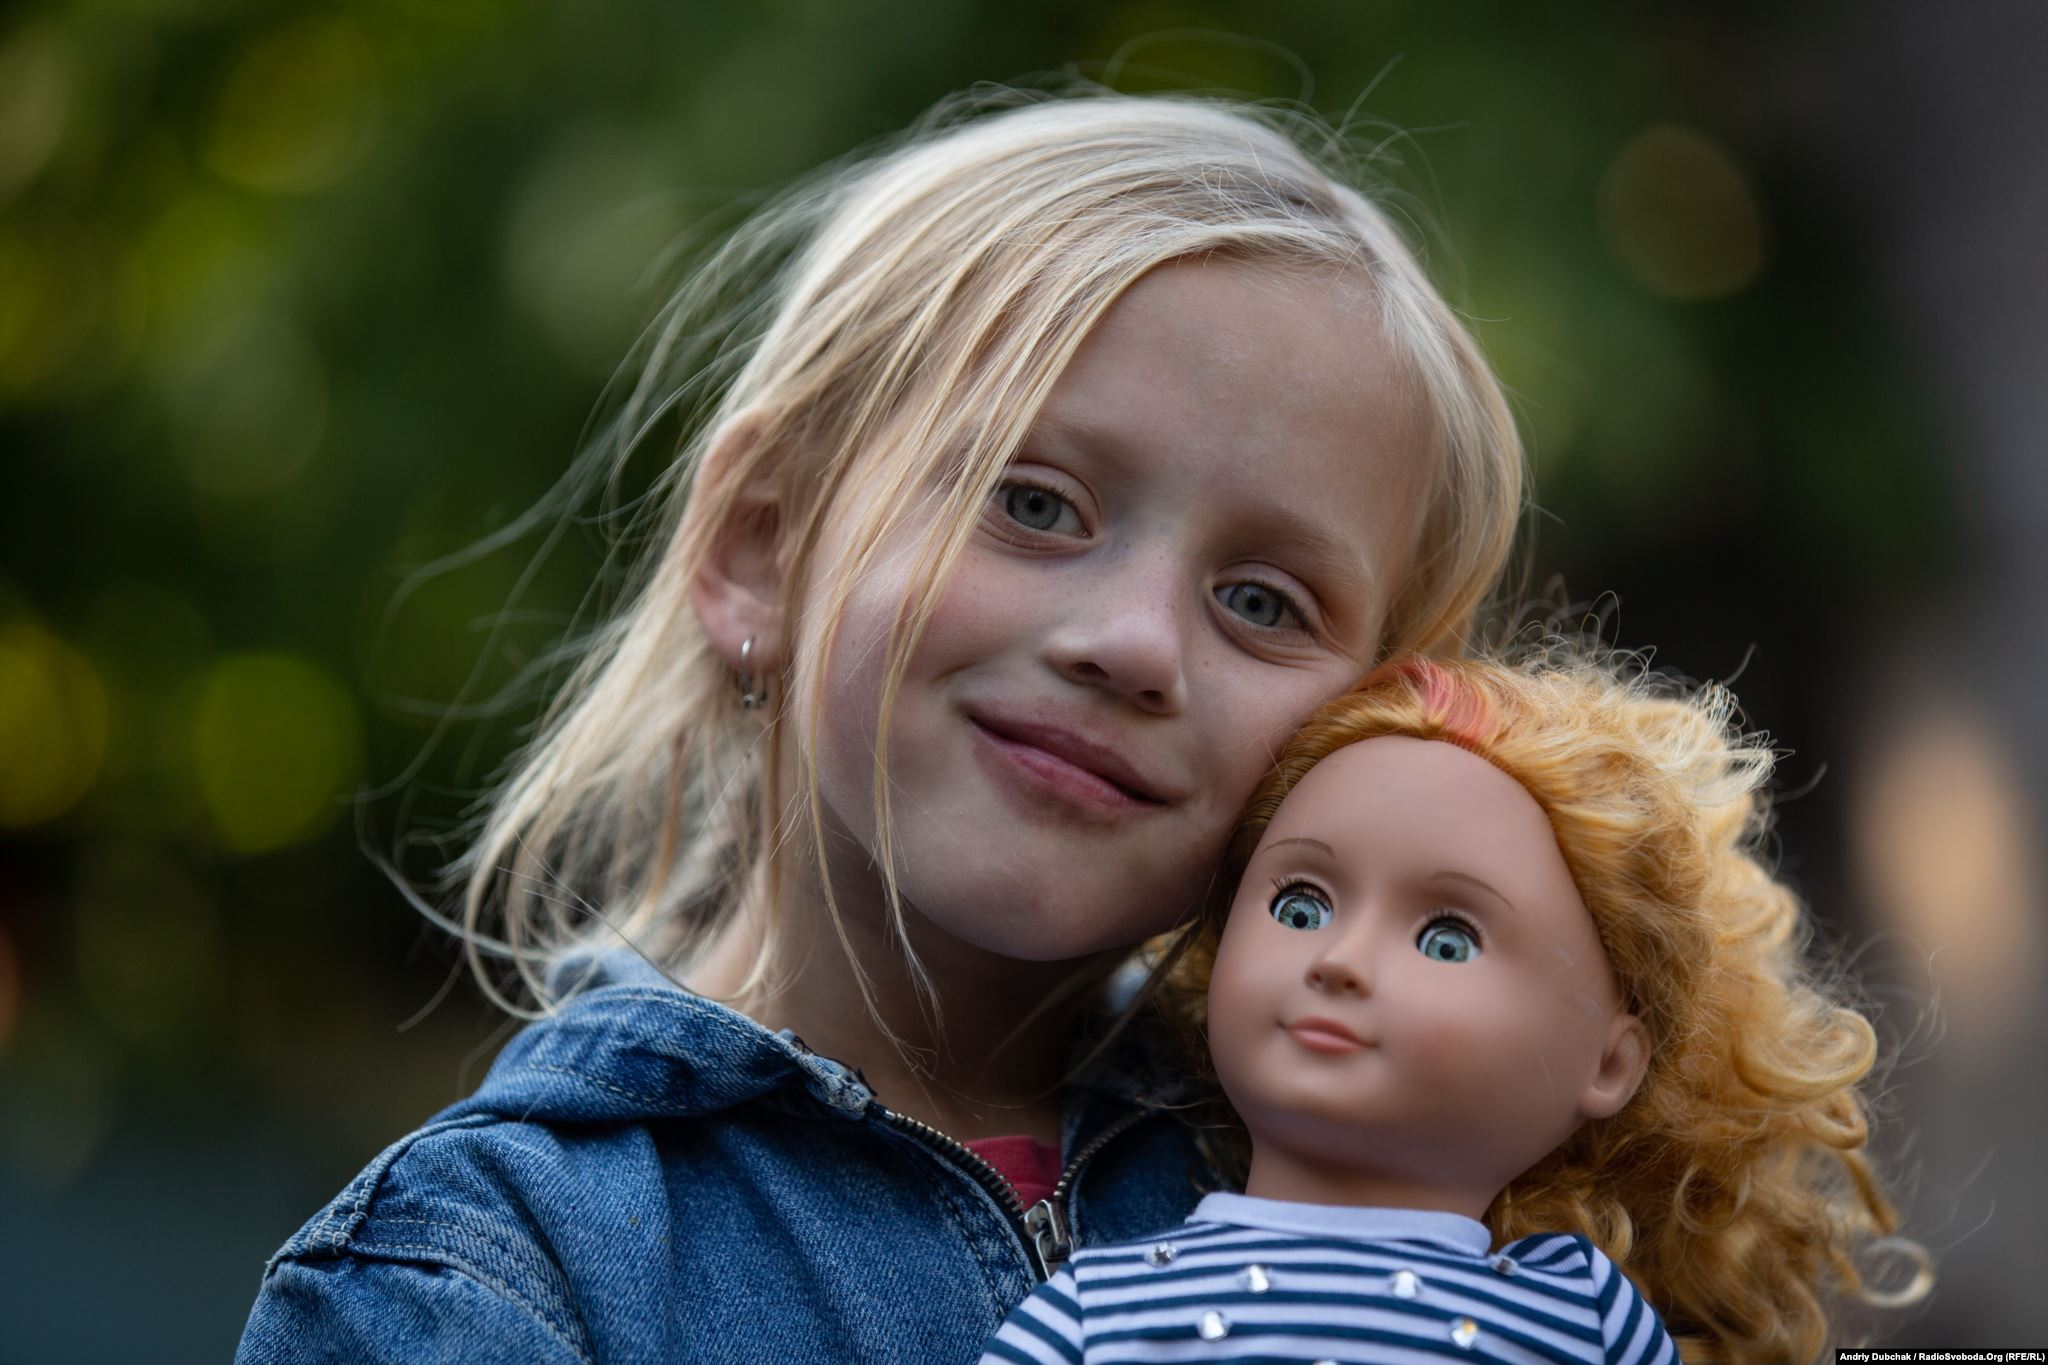 Toma loves dolls and was promised a new toy by a visiting journalist. (photo: Andriy Dubchak)